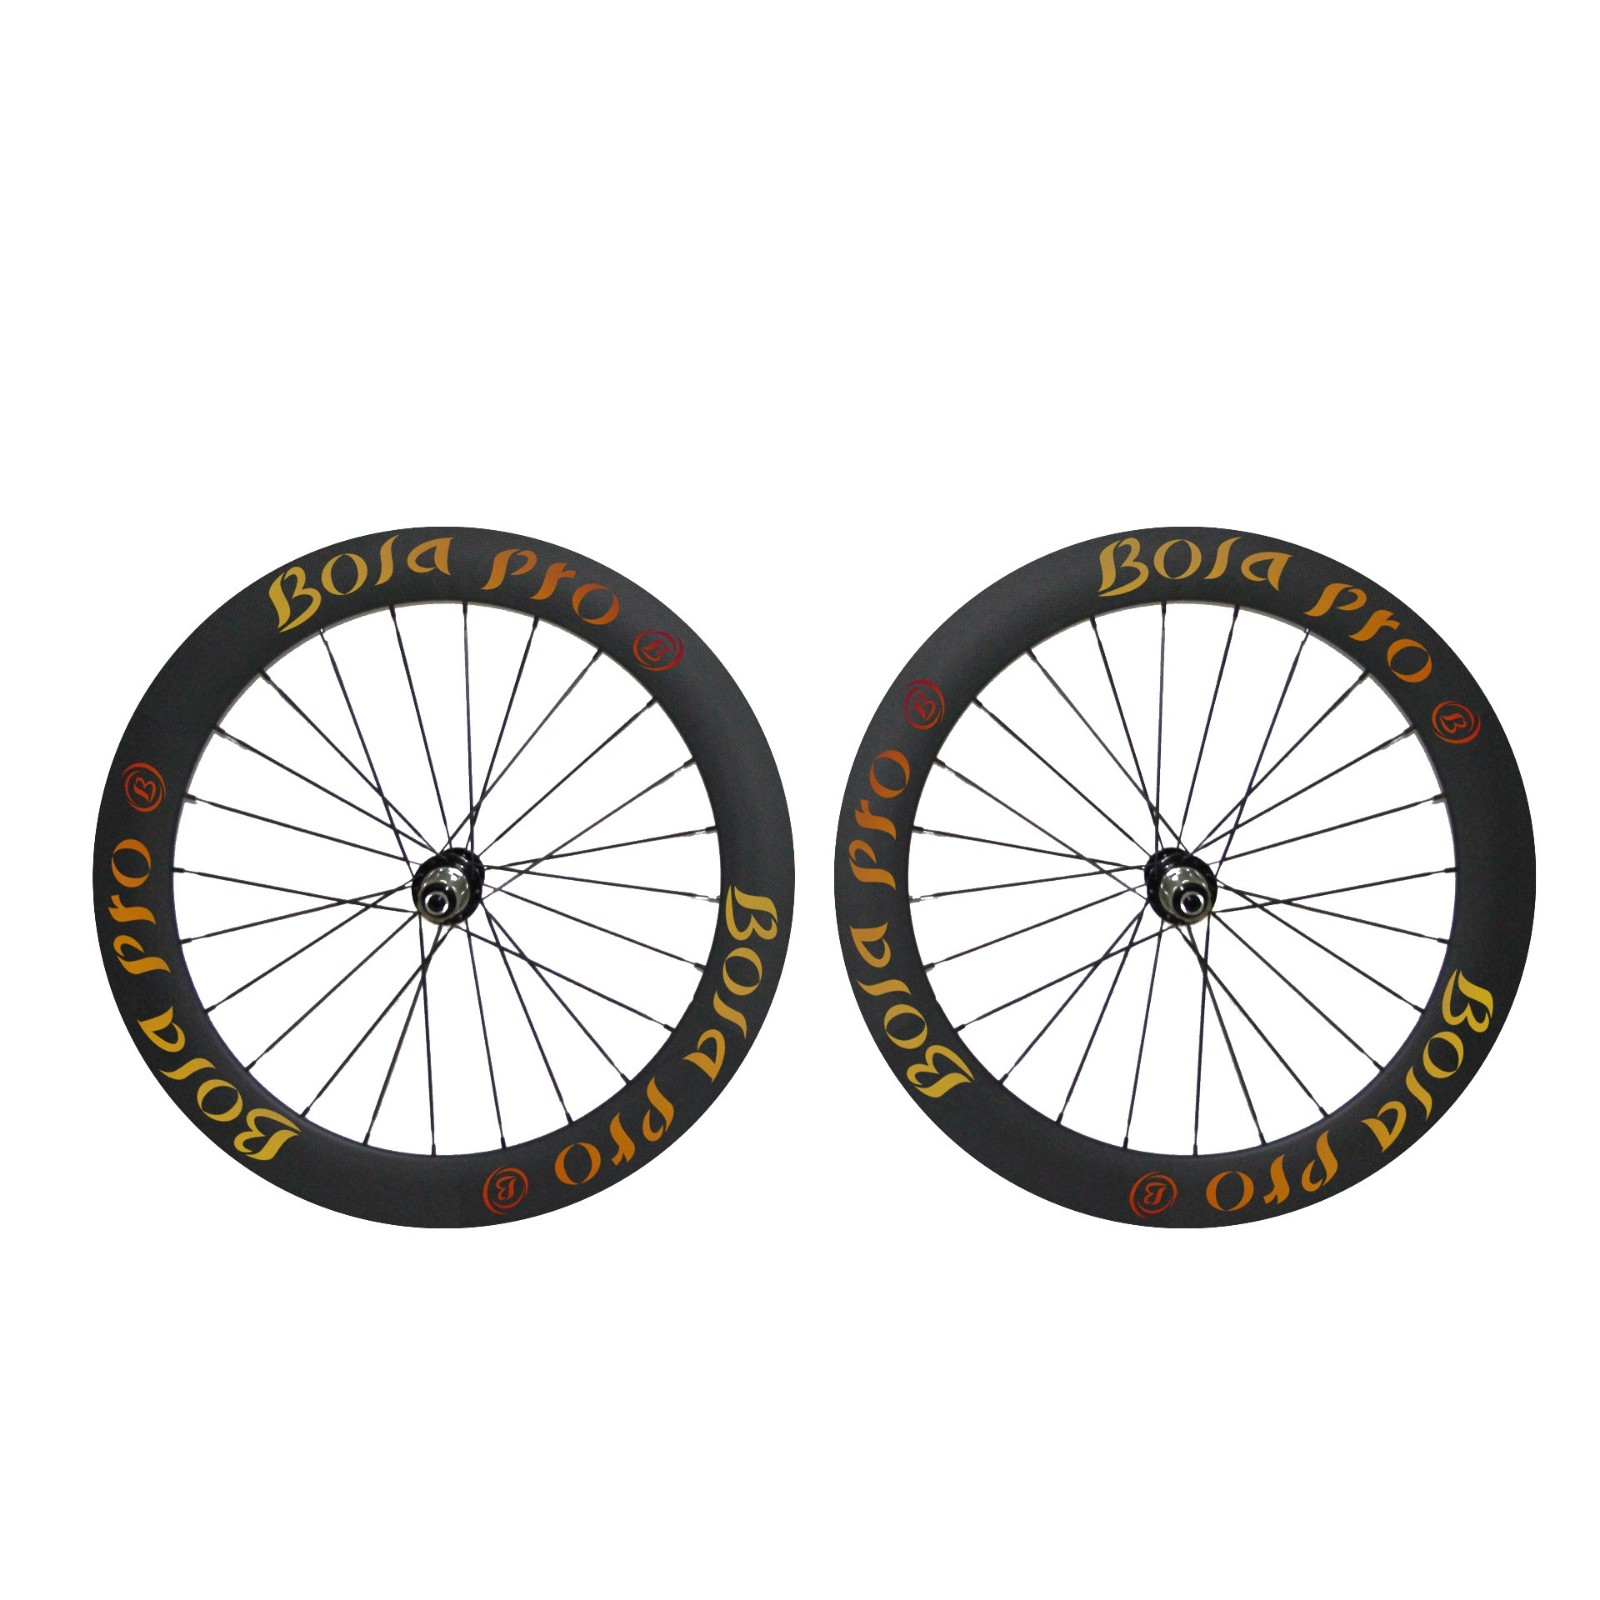 700C 75mm carbon wheelset with disc brake hub